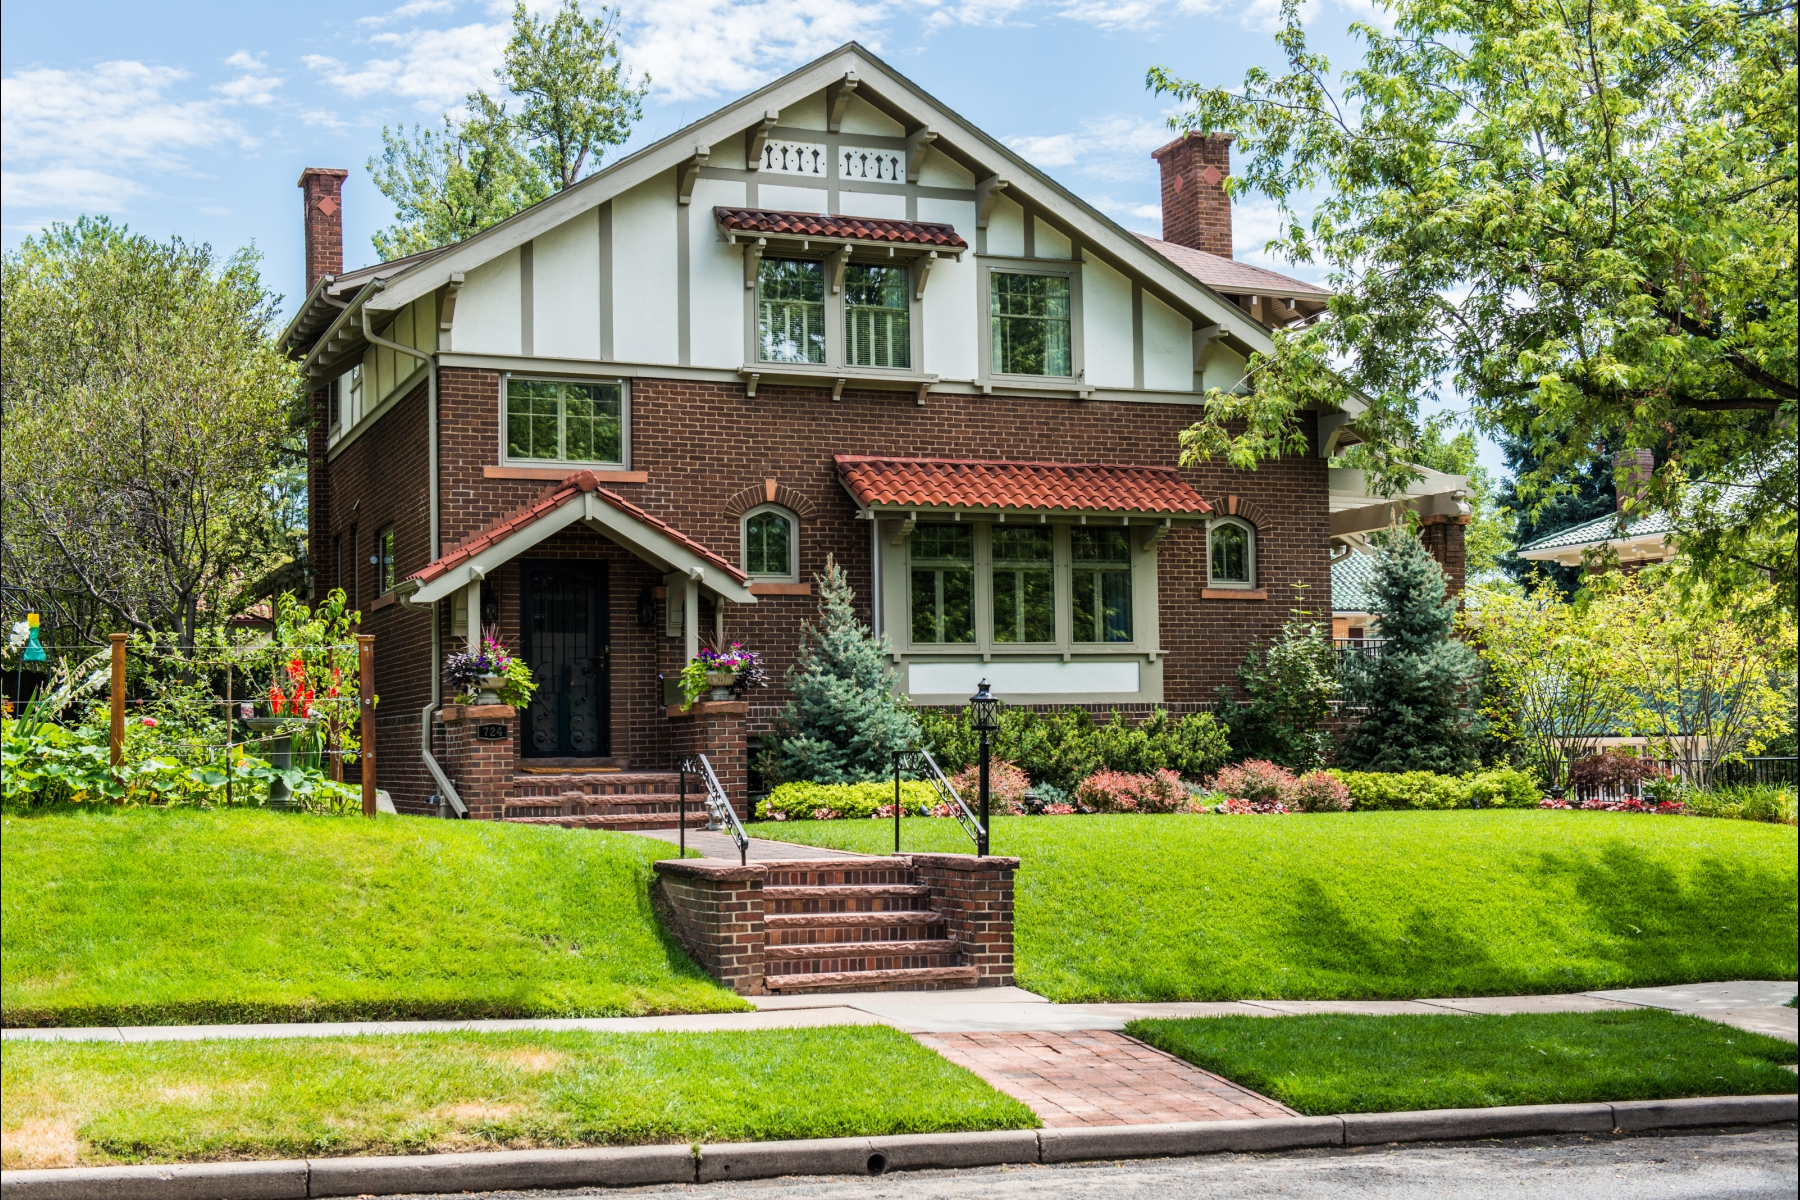 Single Family Home for Sale at Charming Historic Home just off 7th Avenue Parkway 724 Gaylord Street Denver, Colorado 80206 United States